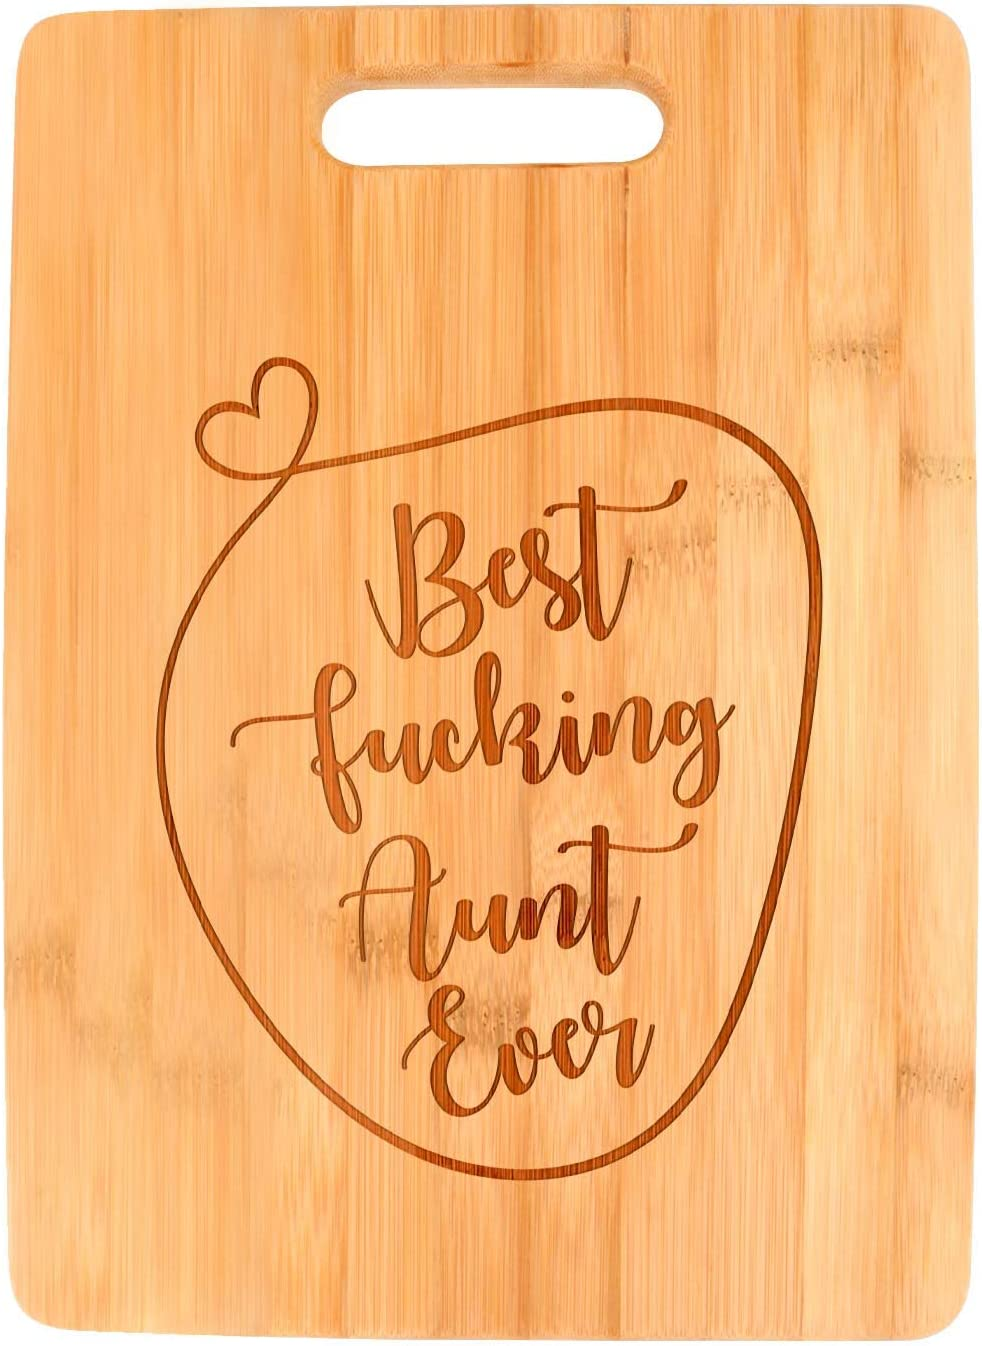 Funny Cutting Boards Bombing free shipping For Kitchen Best Rect Aunt Large-scale sale Big Ever F-cking